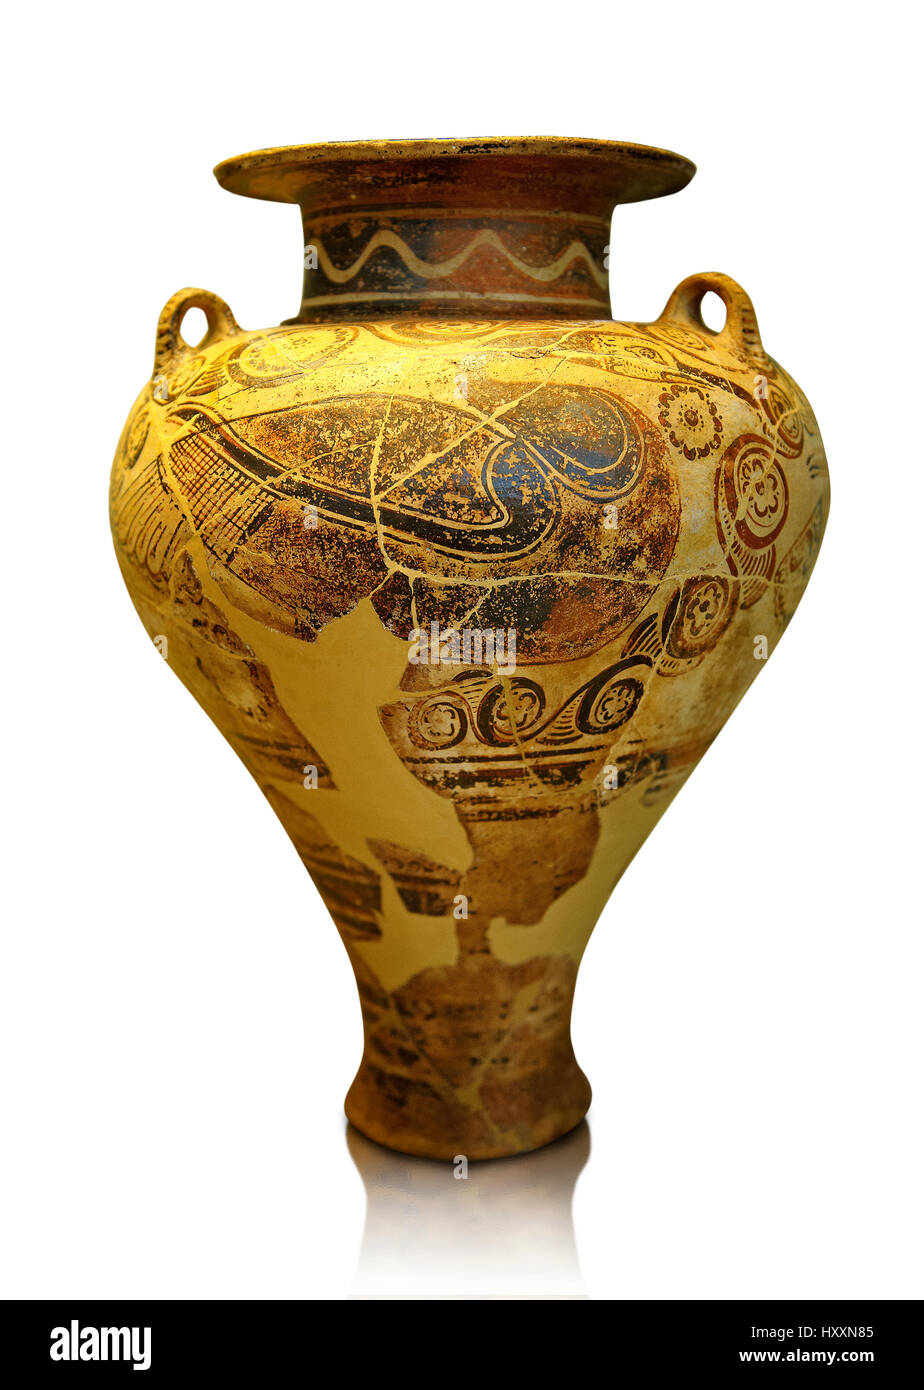 Jug decorated with stylised birds bands showing Cycladic and Minoan influences.   Mycenae Grave find, Greece. 15th Stock Photo